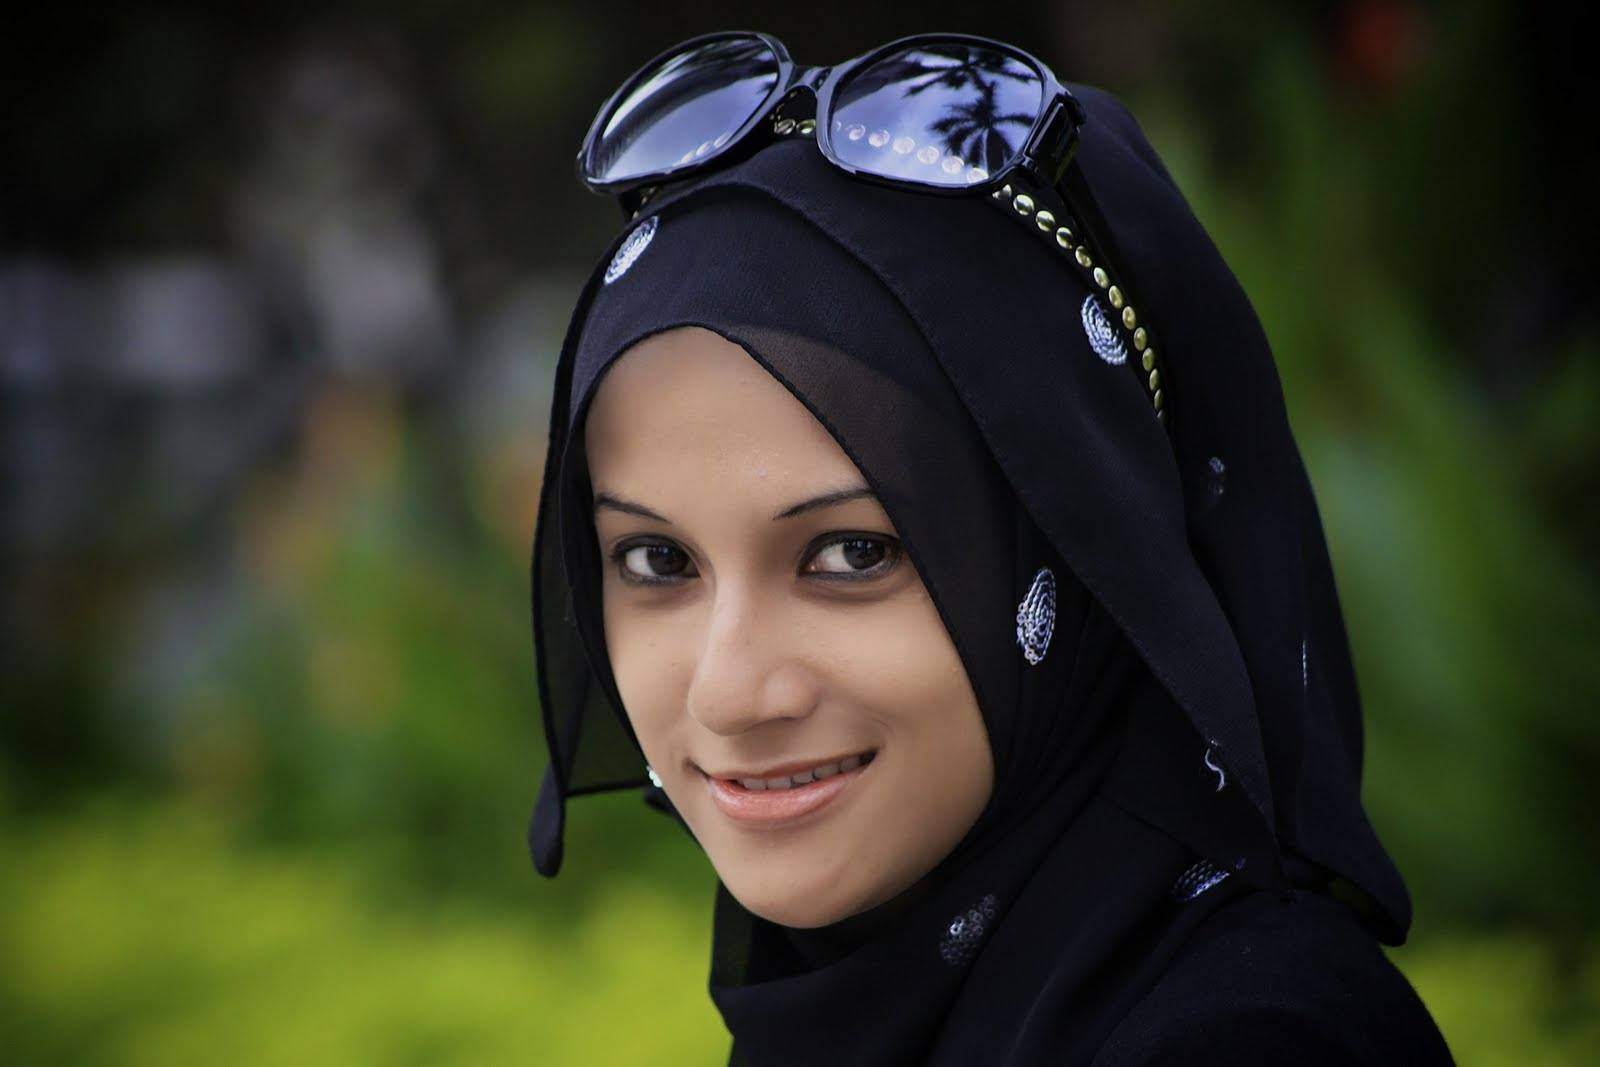 opheim muslim girl personals What i learned from young muslim women during ramadan  of her religion,  dating and her experiences of being a muslim woman in dubai.